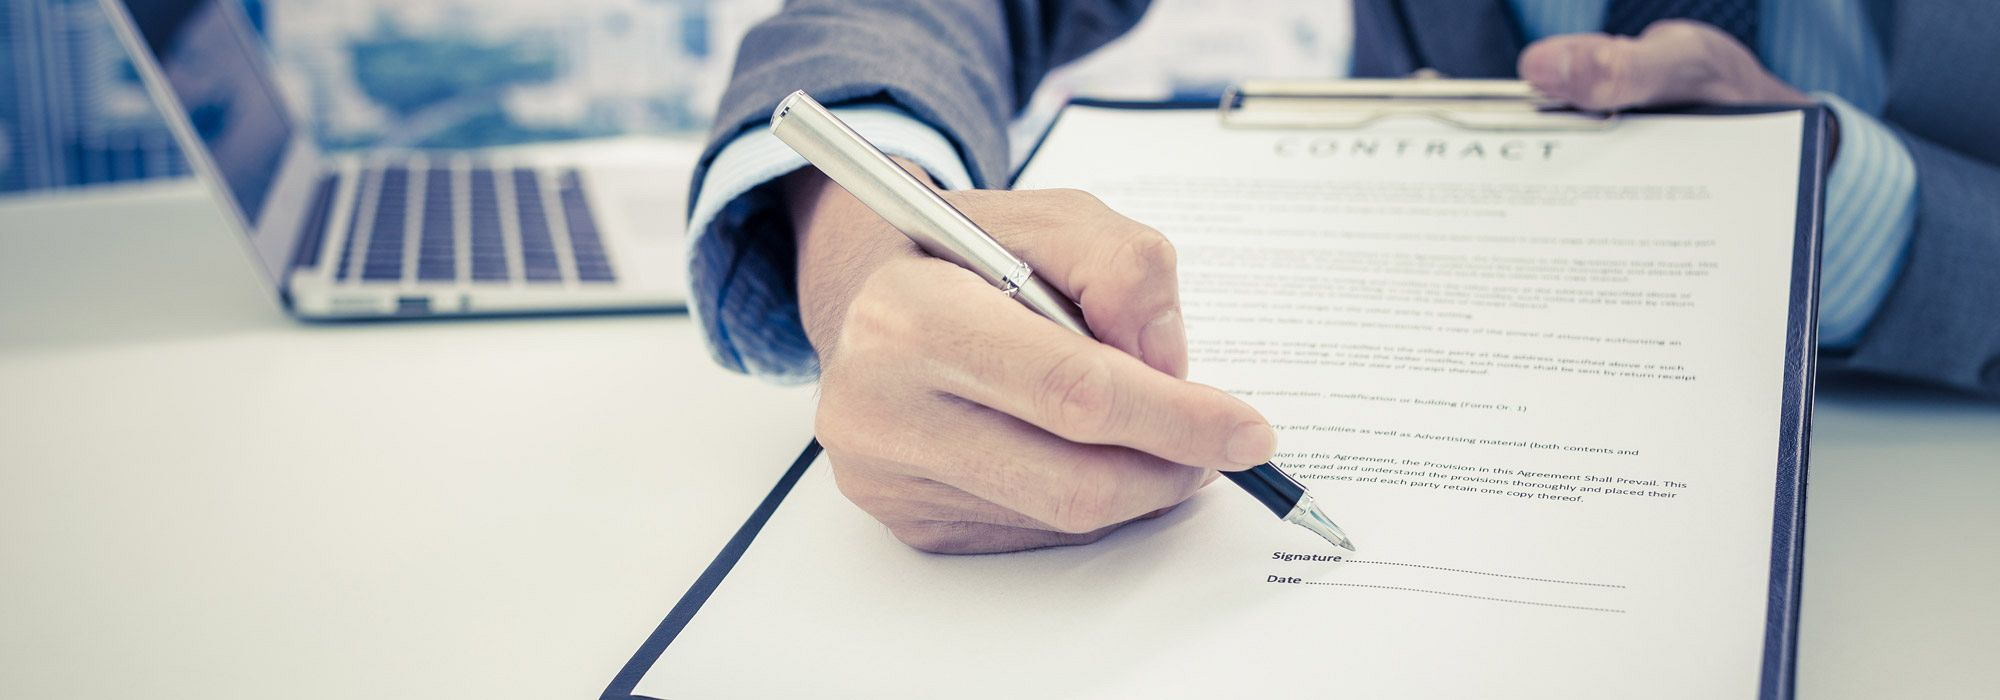 Actions for Breach of Contract